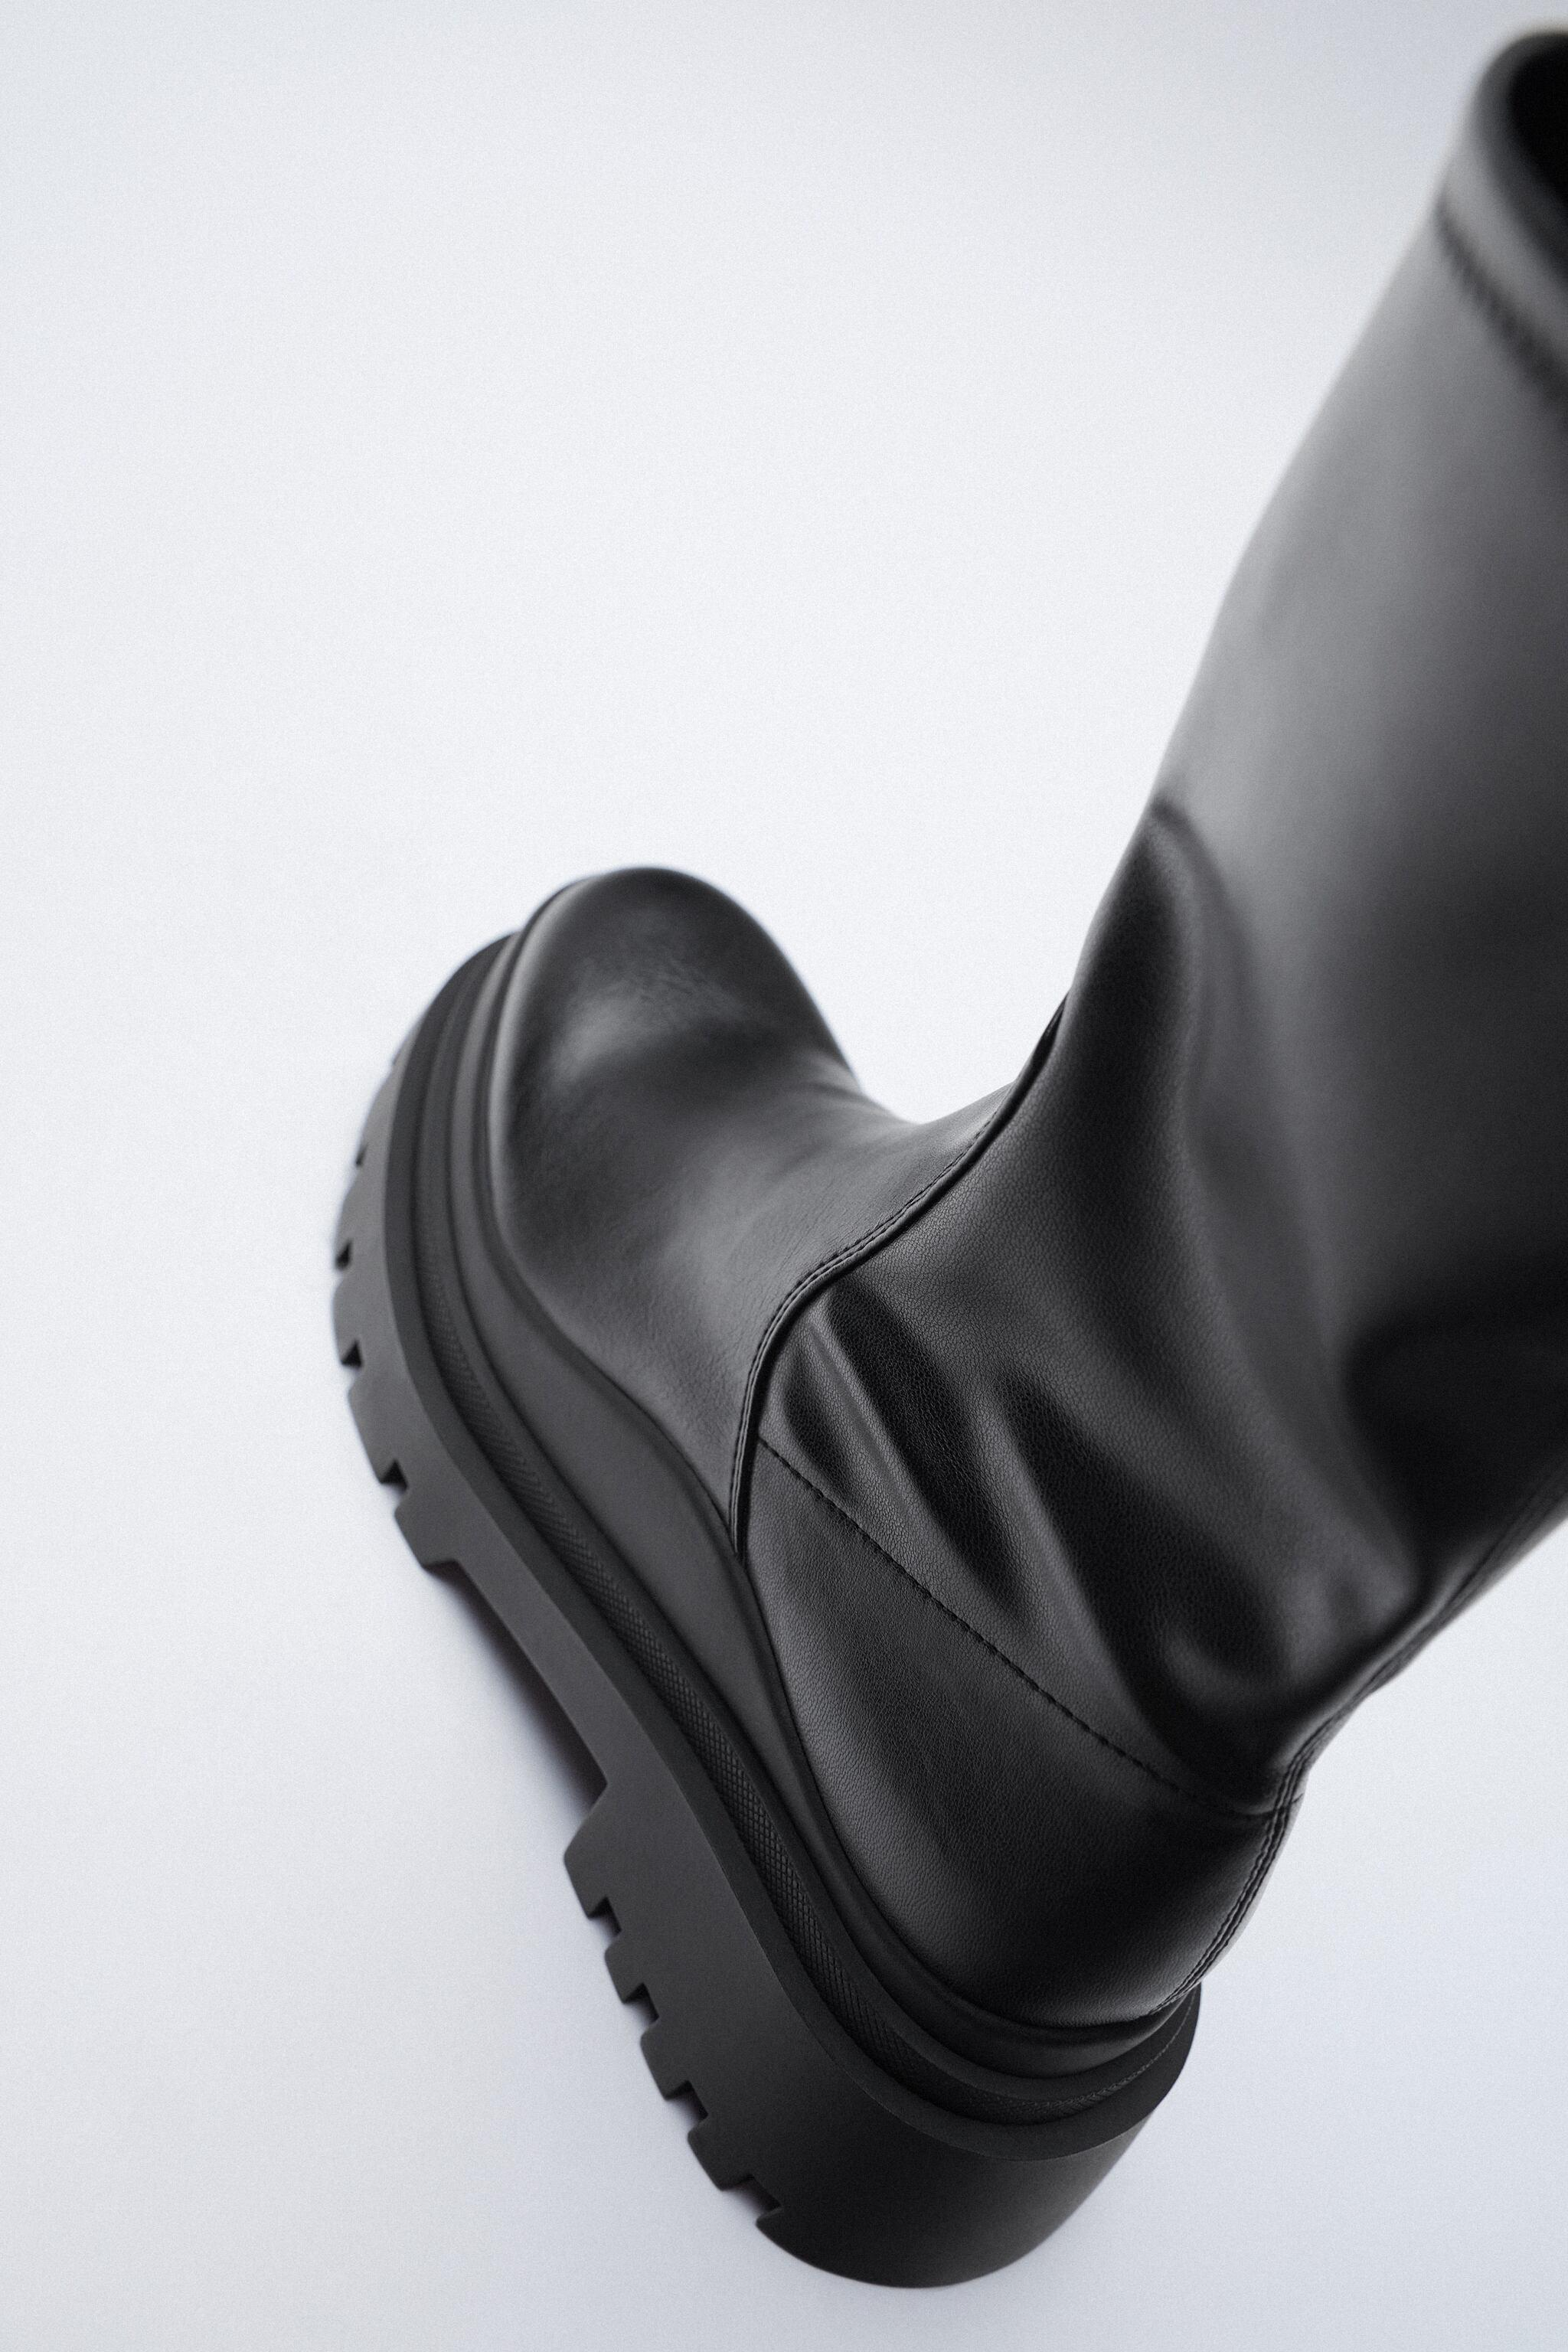 LOW HEELED LUG SOLE ANKLE BOOTS 3